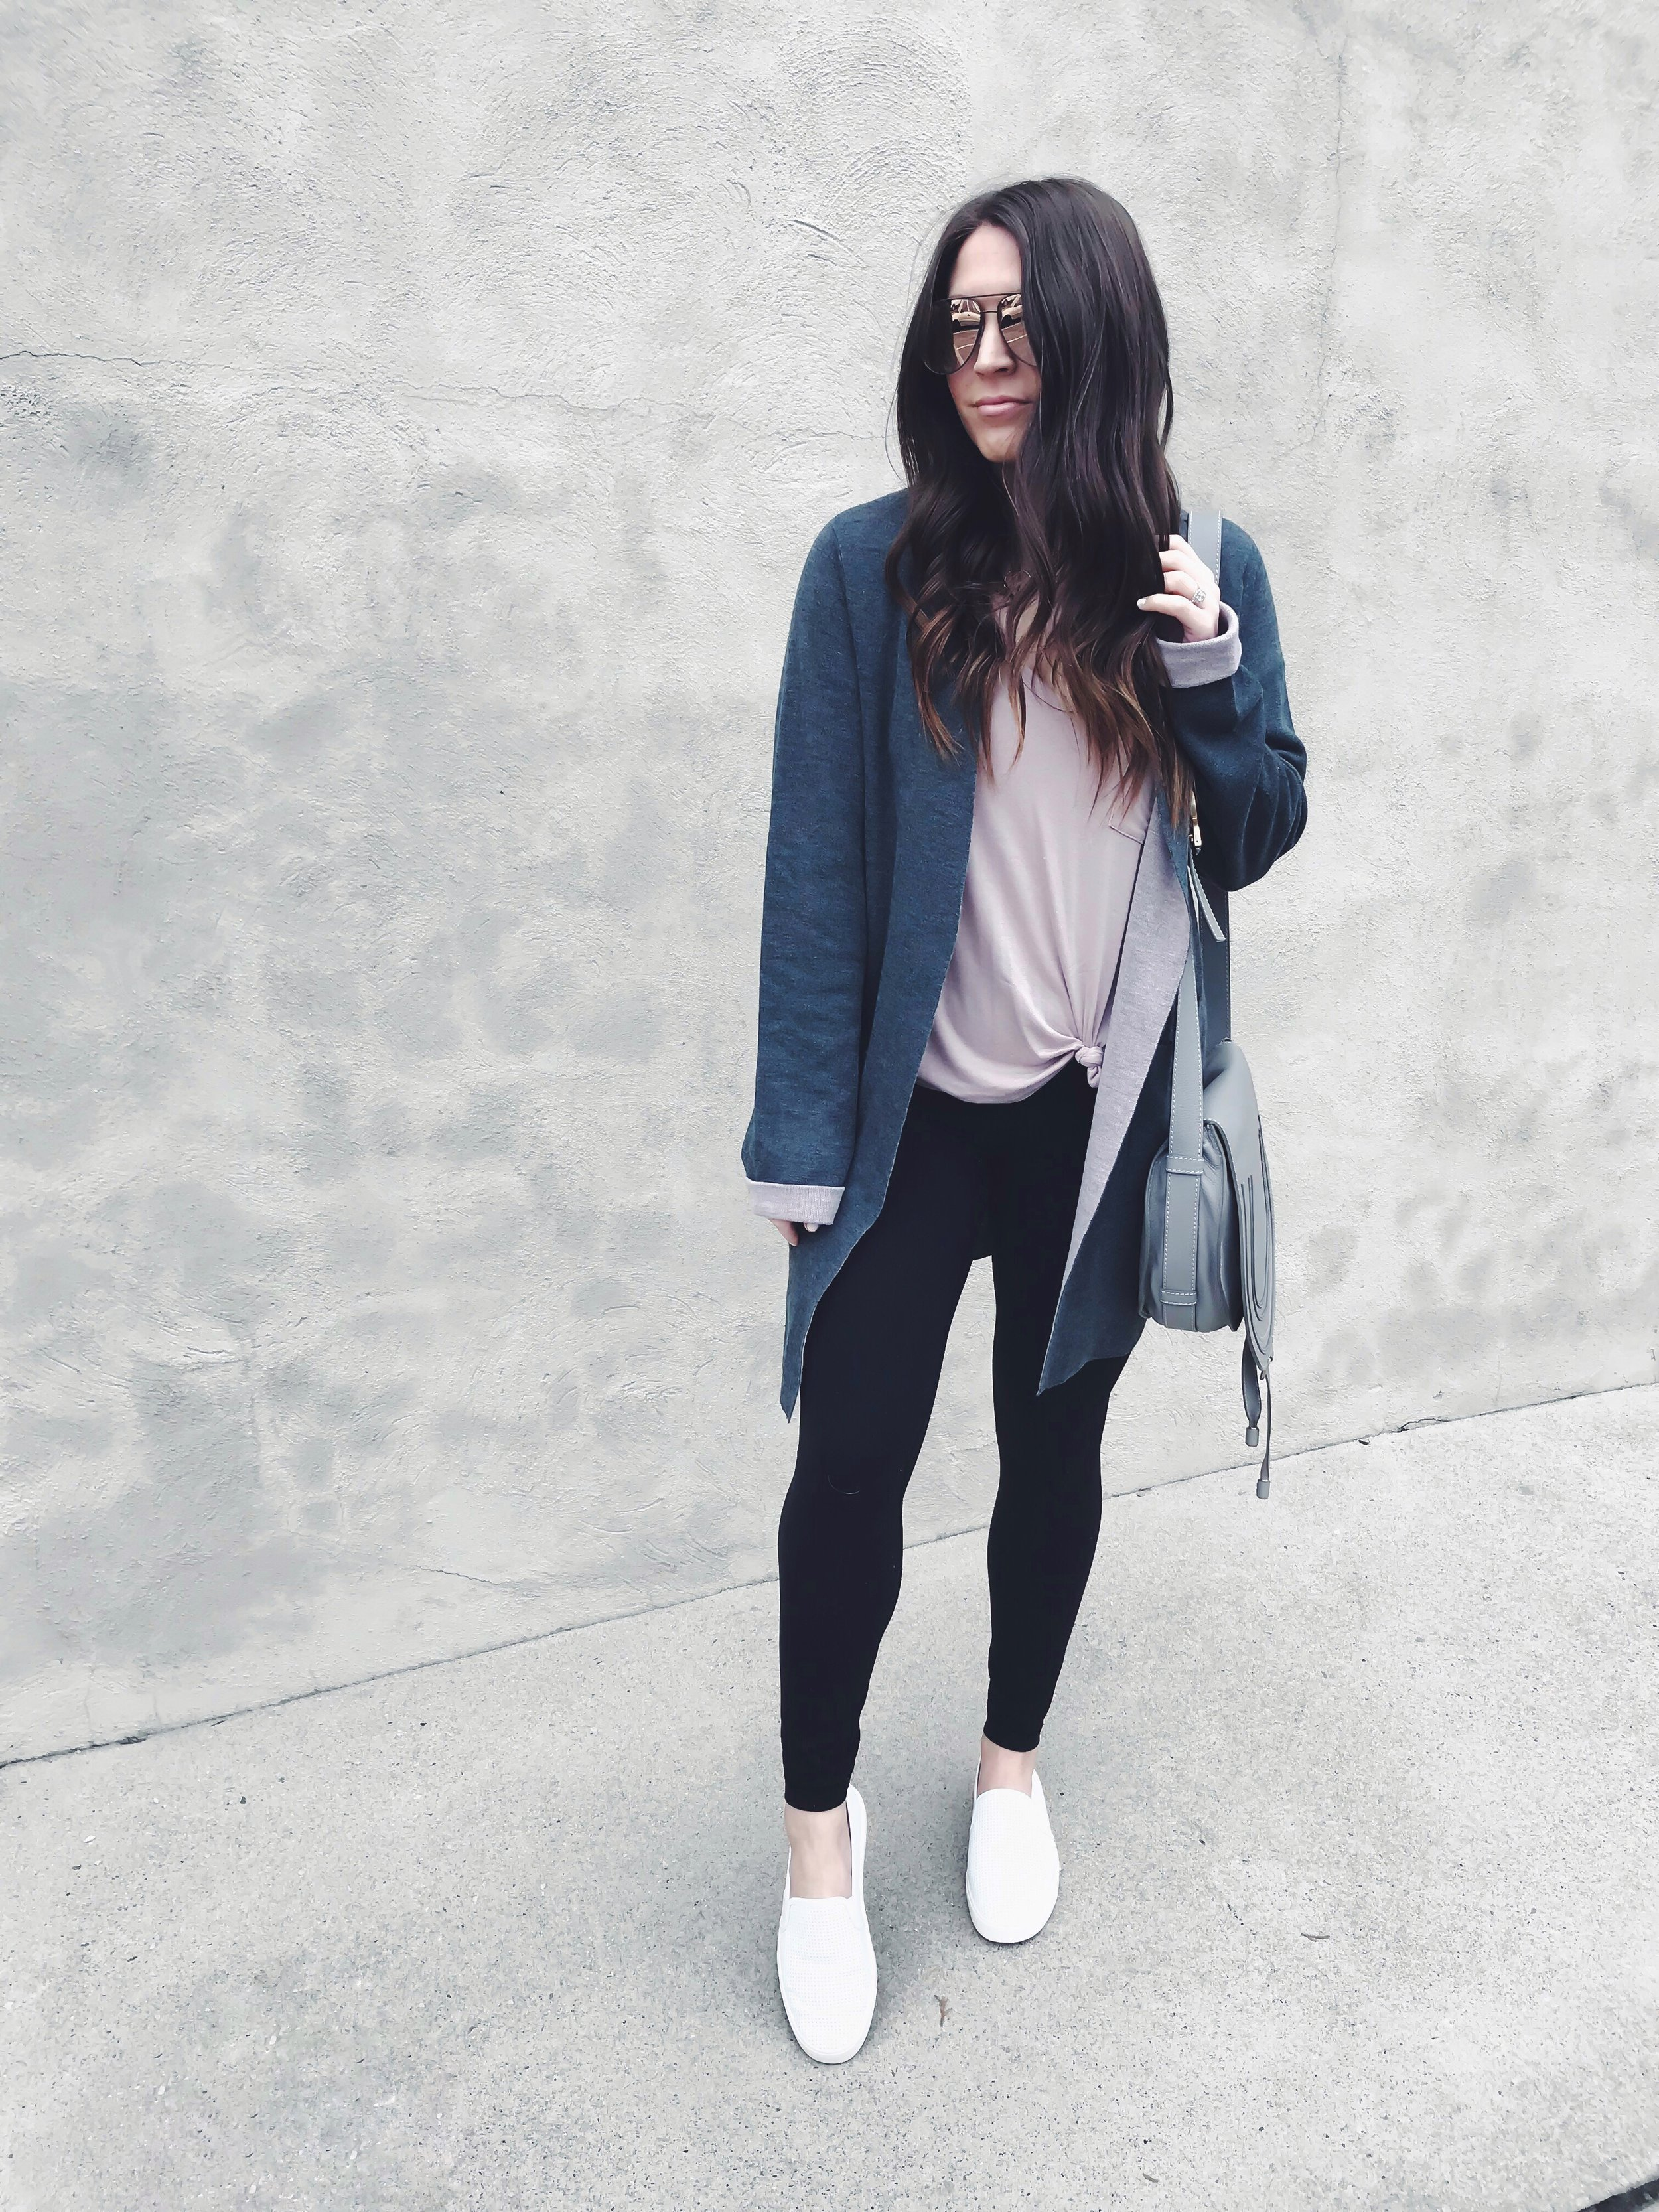 Instagram Round Up + Current Sales | Pine Barren Beauty | outfit of the day, outfit details, spring outfit, gentle fawn cardigan, Lulu lemon leggnis, Vince slip ons